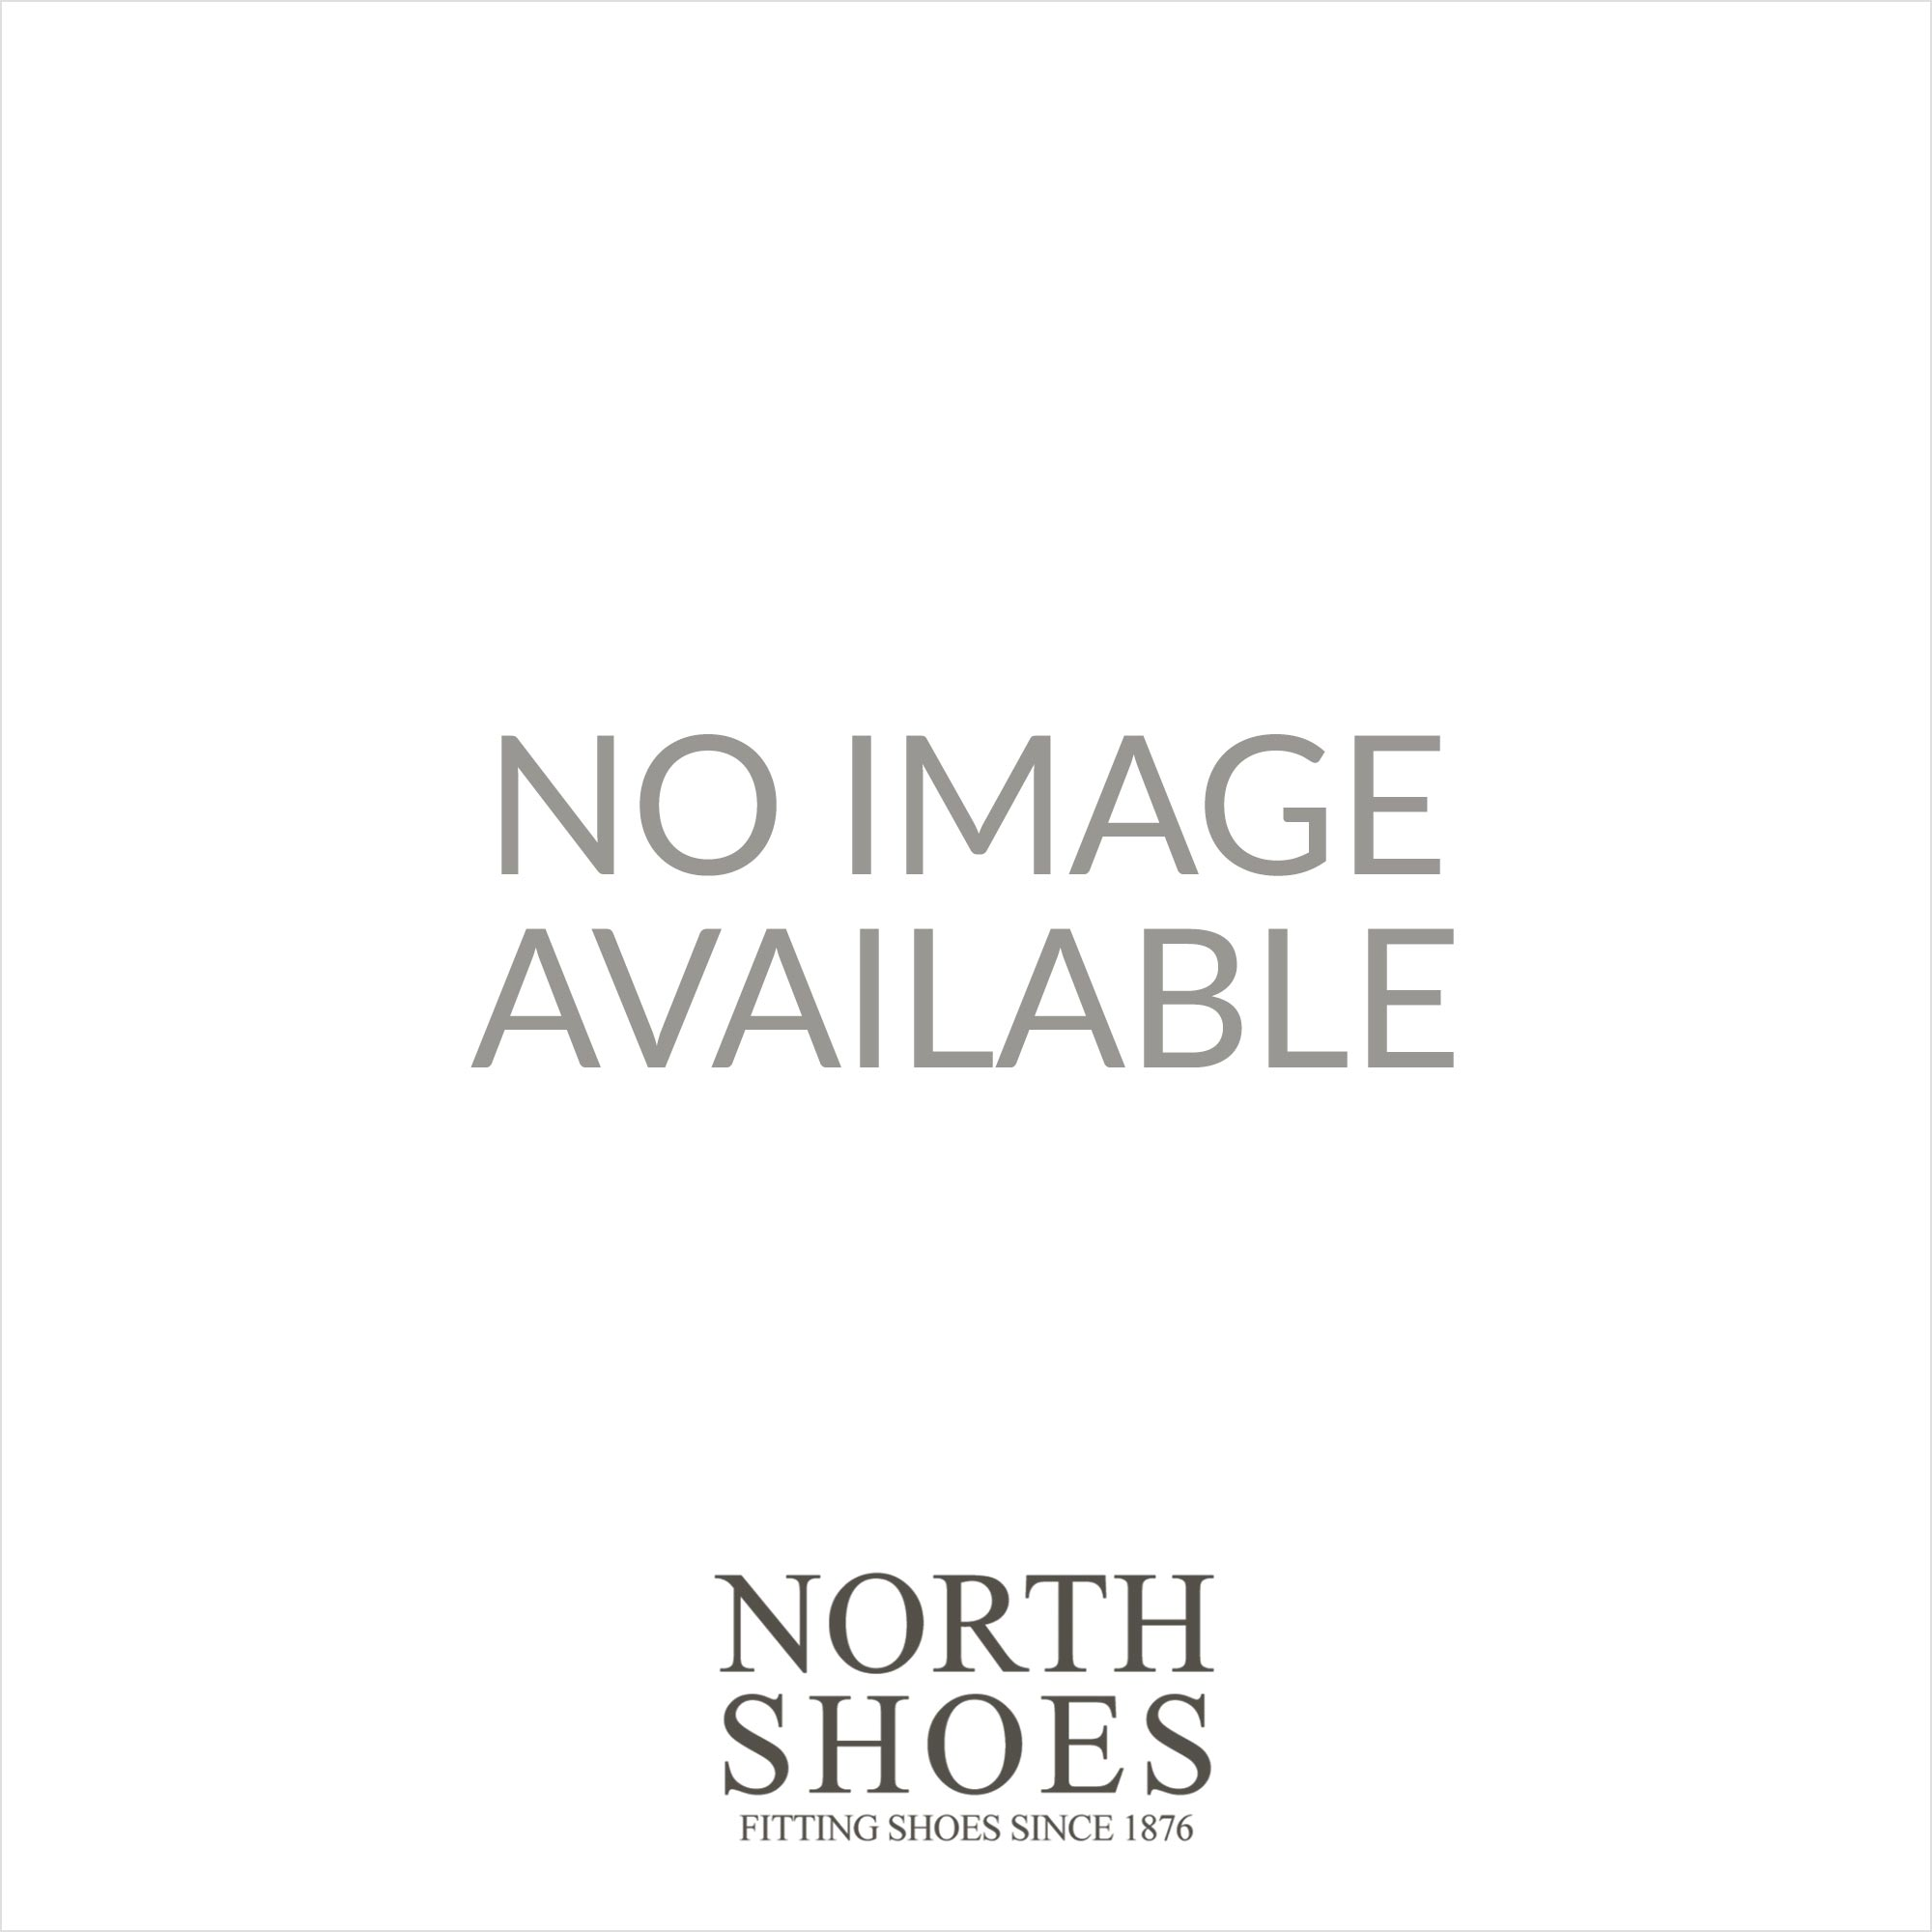 761a36c6bea7 Clarks Sail Beach Silver Leather Womens Buckle Strapy Jewelled Sandal -  Clarks from North Shoes UK